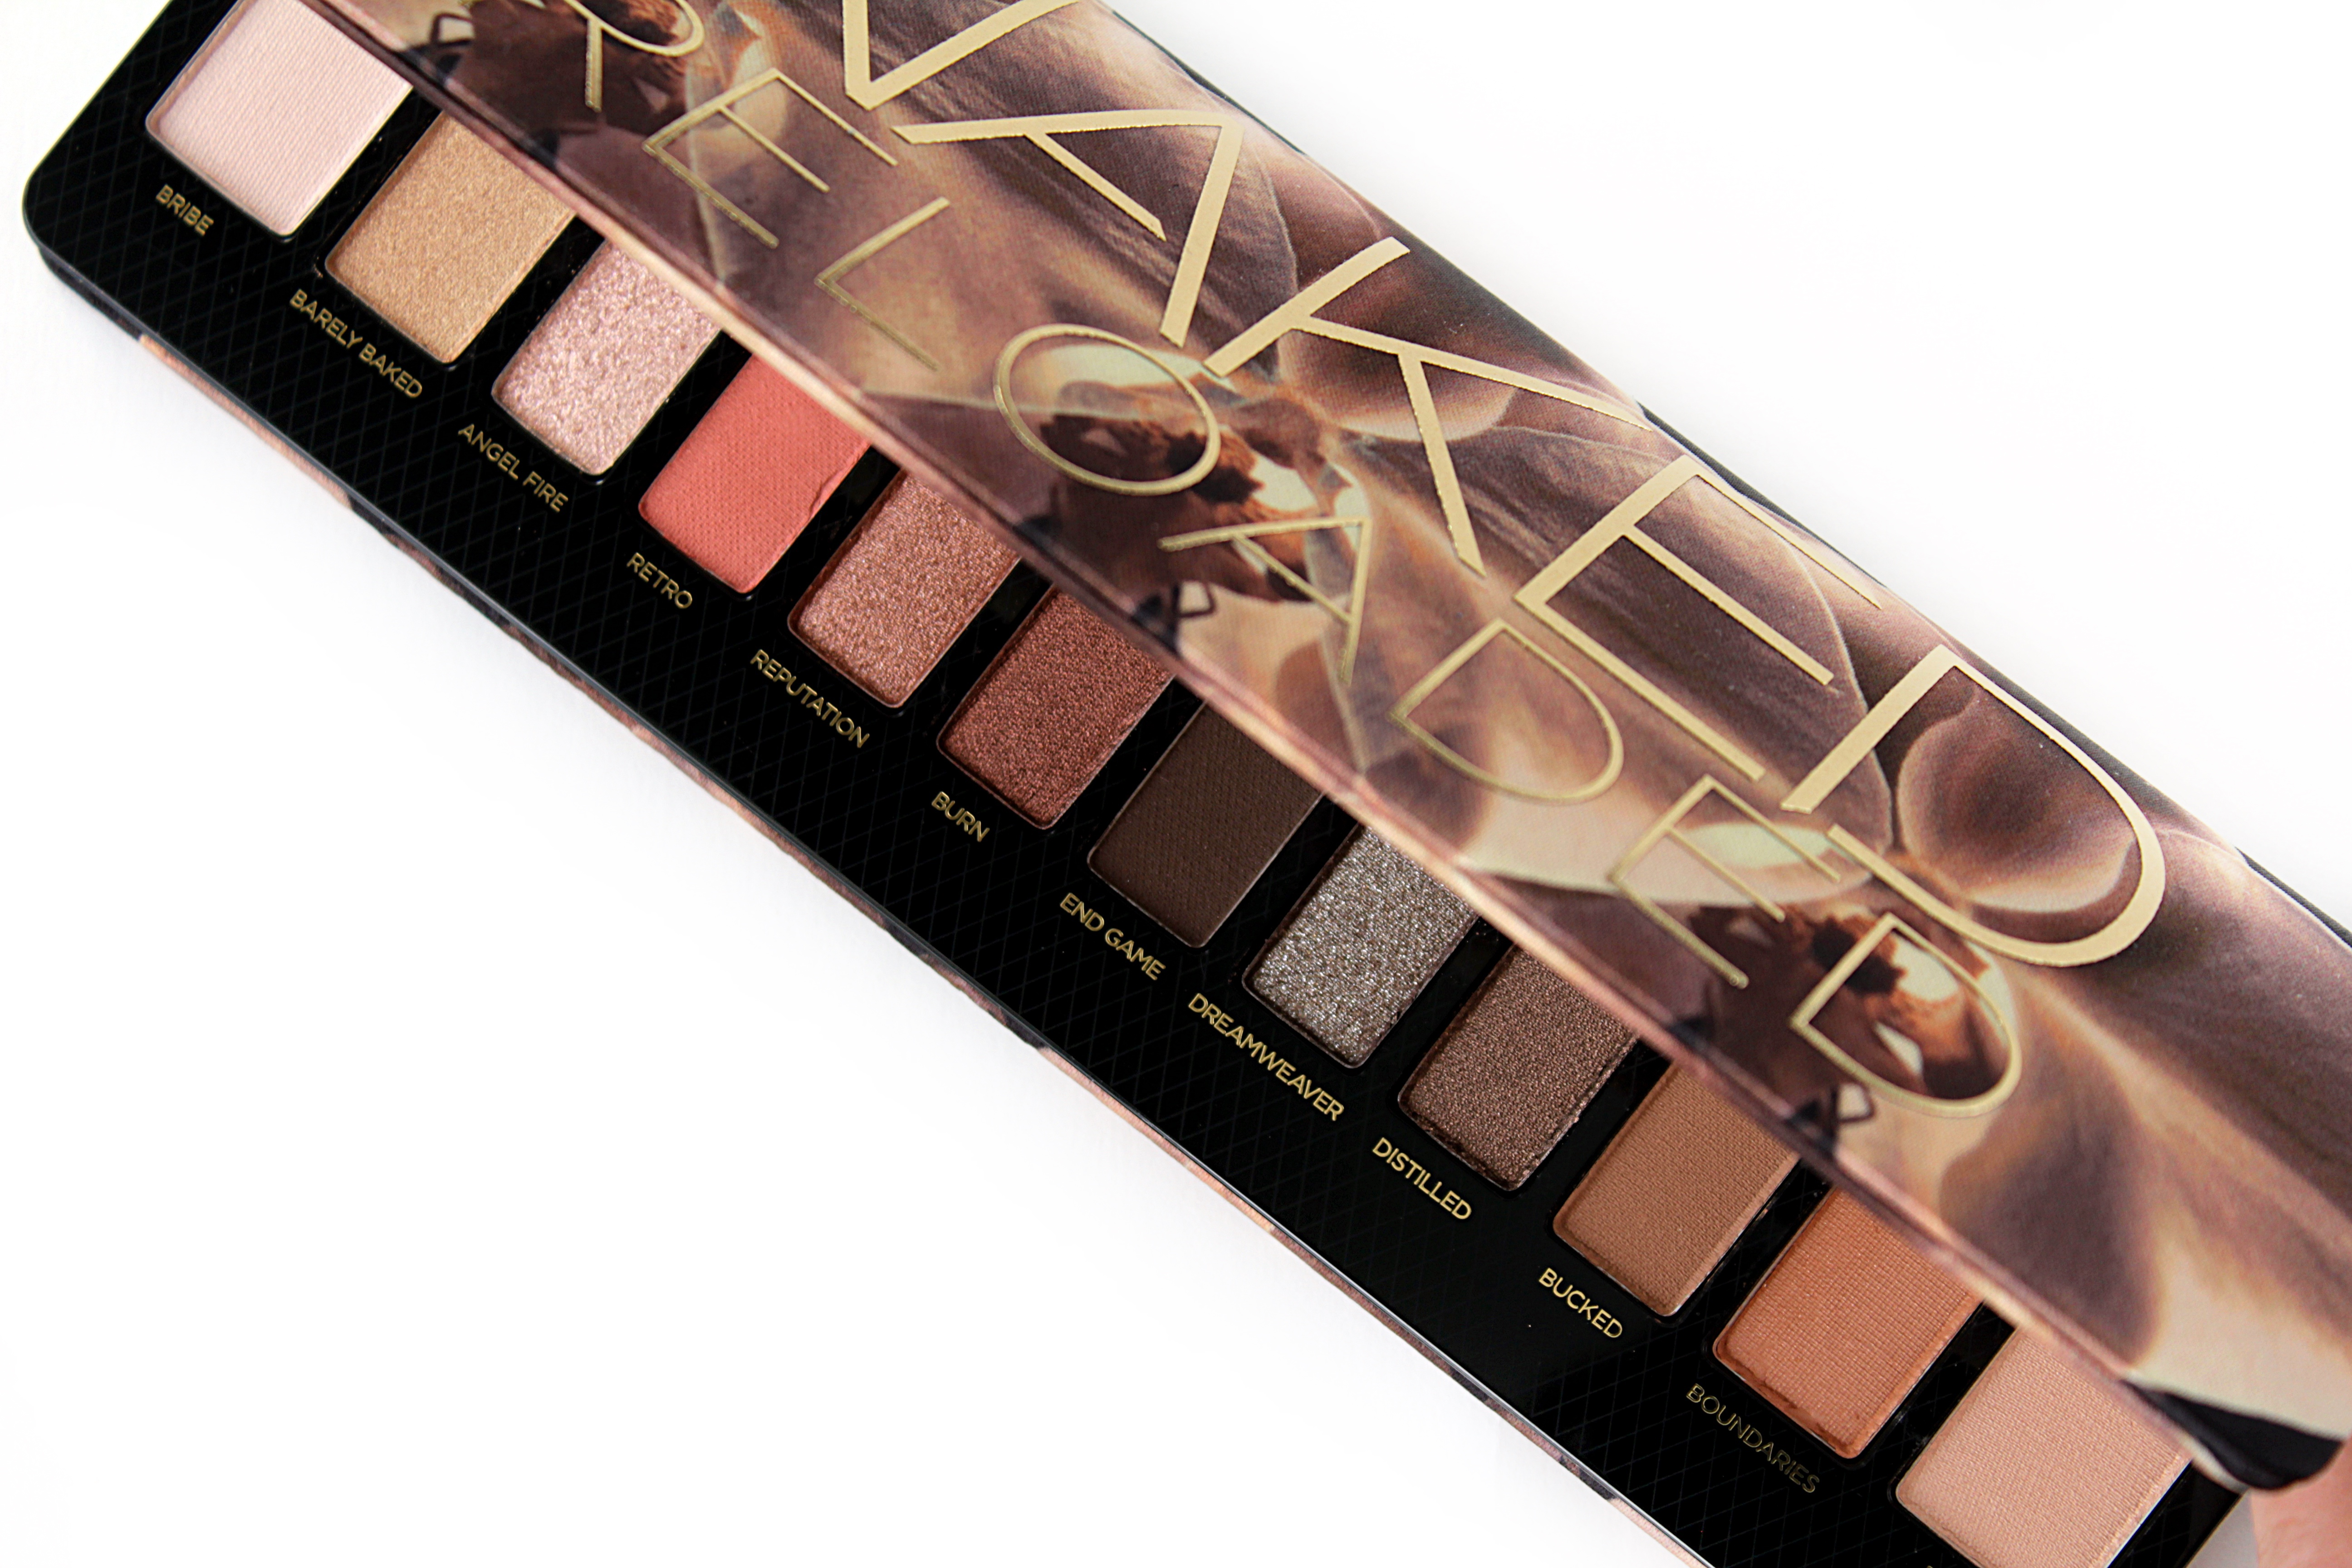 Urban Decay Reviews, Swatches and Pictures on Makeup and